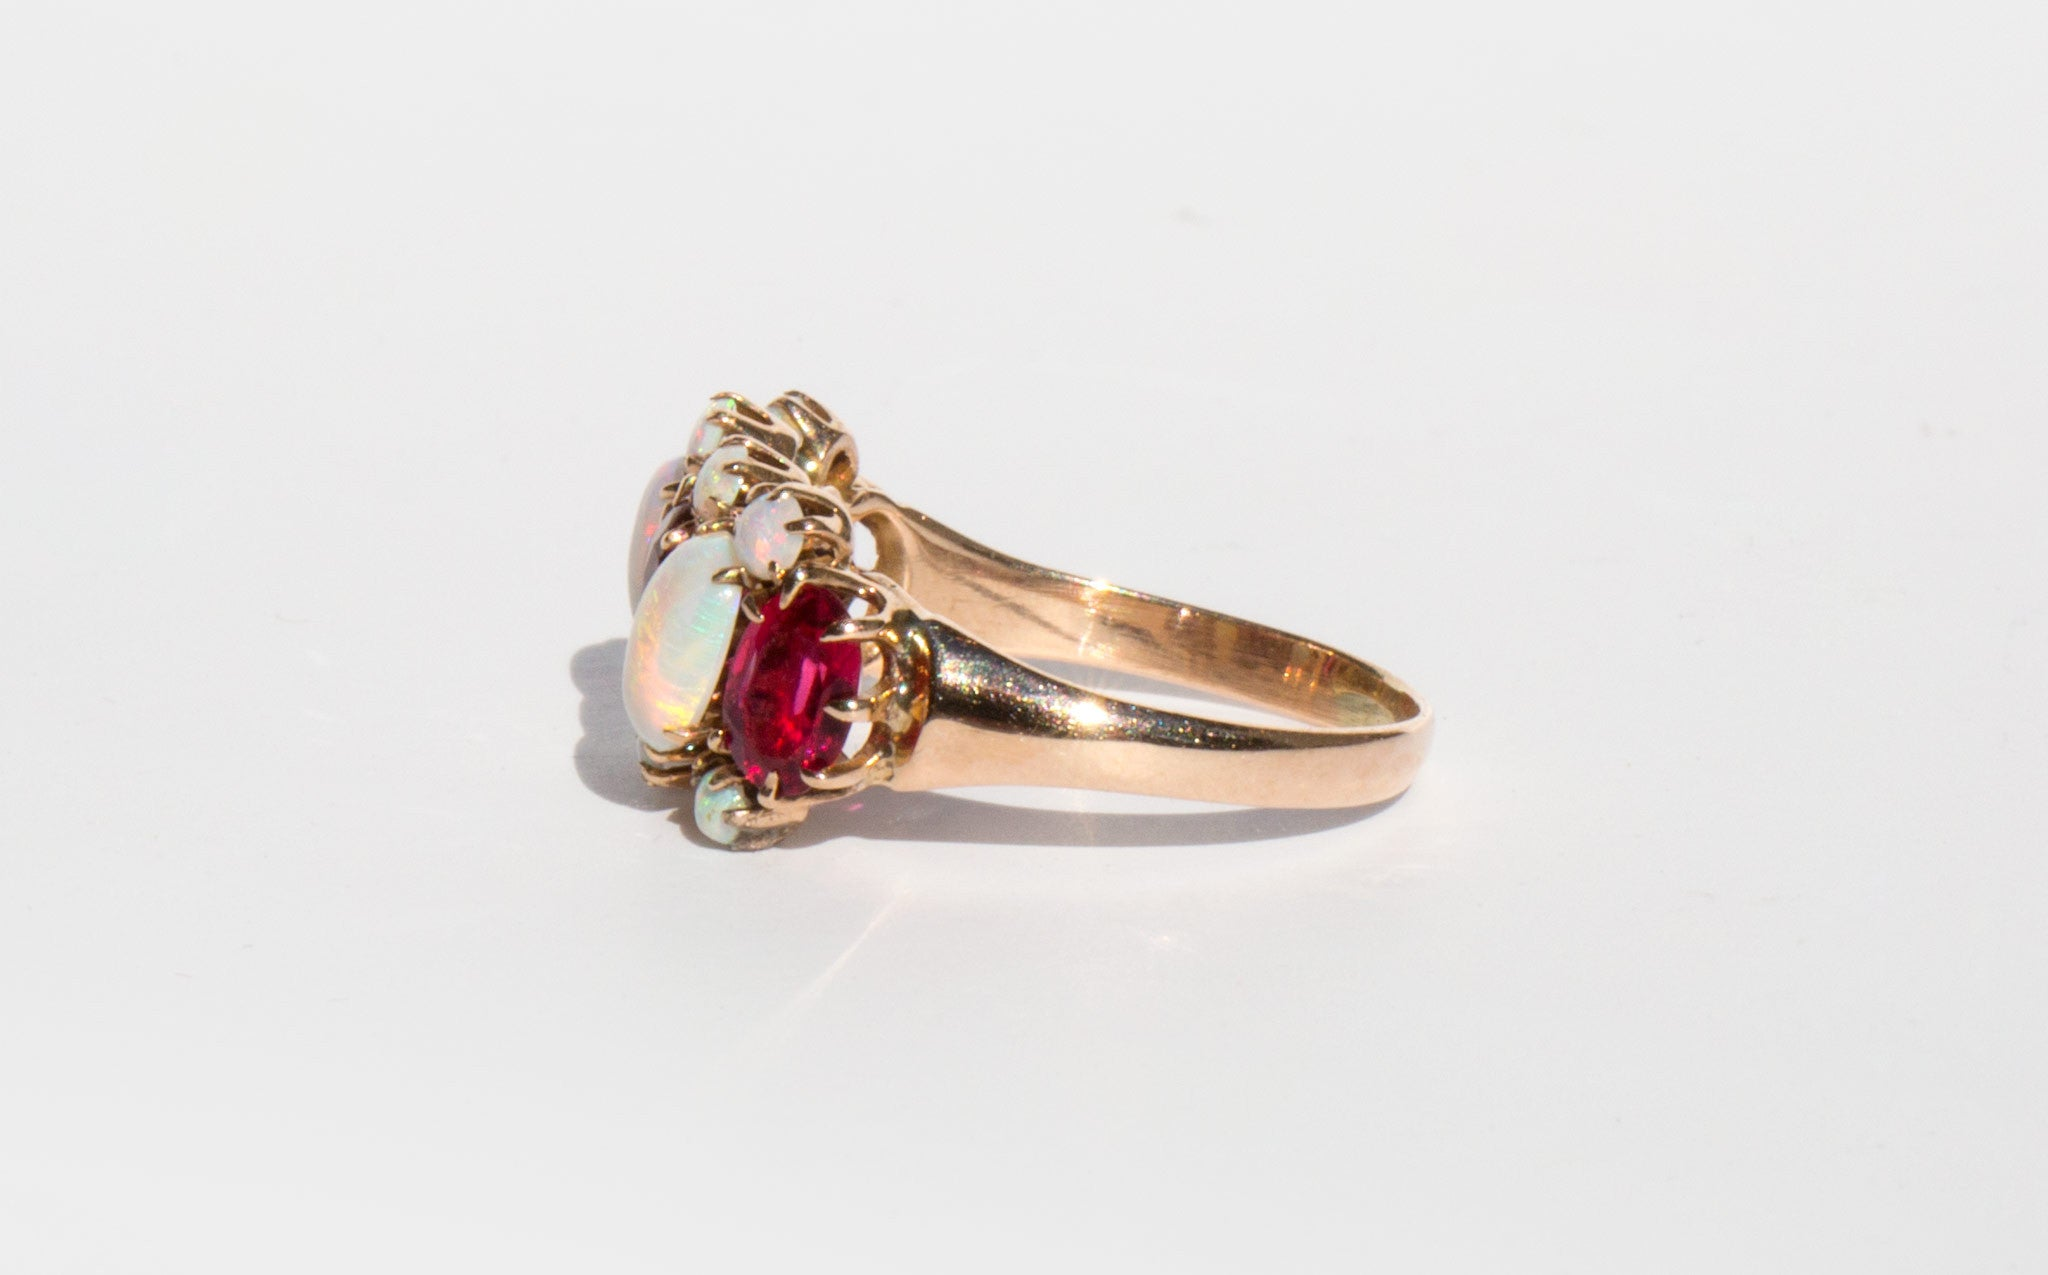 Victorian 14k Opal and Garnet Ring